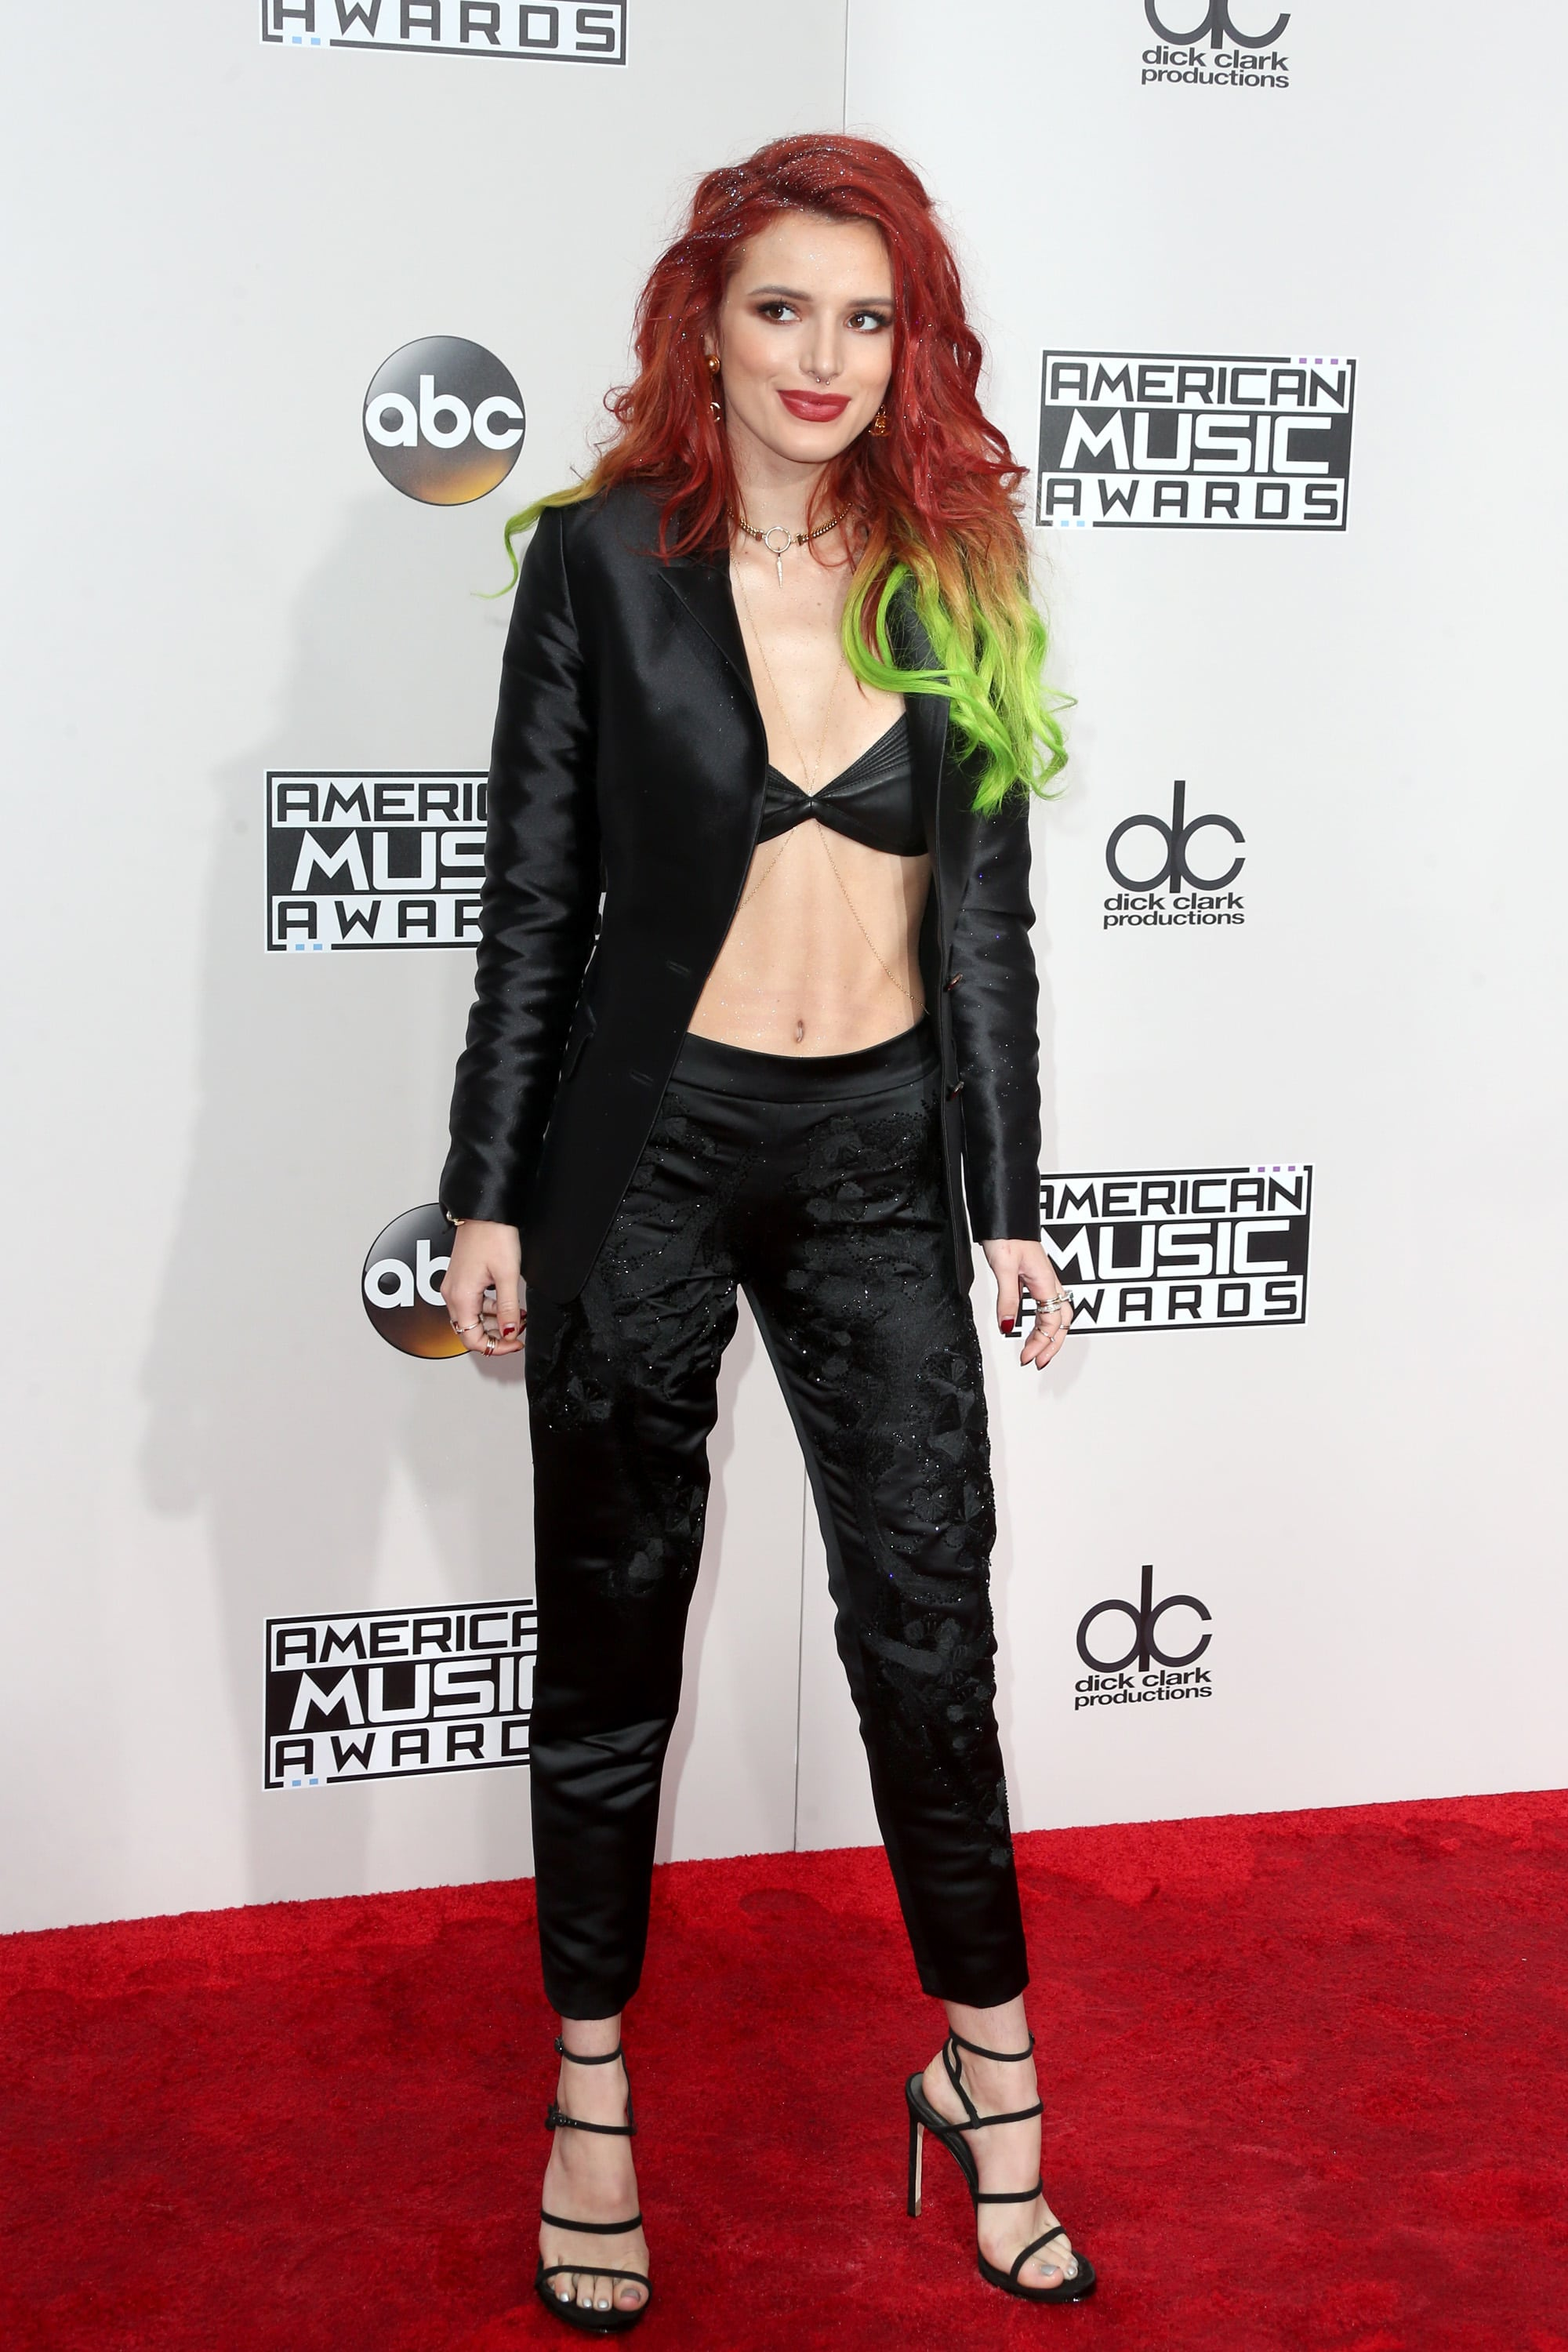 Bella thorne life information - Bella Thorne Life Information 17